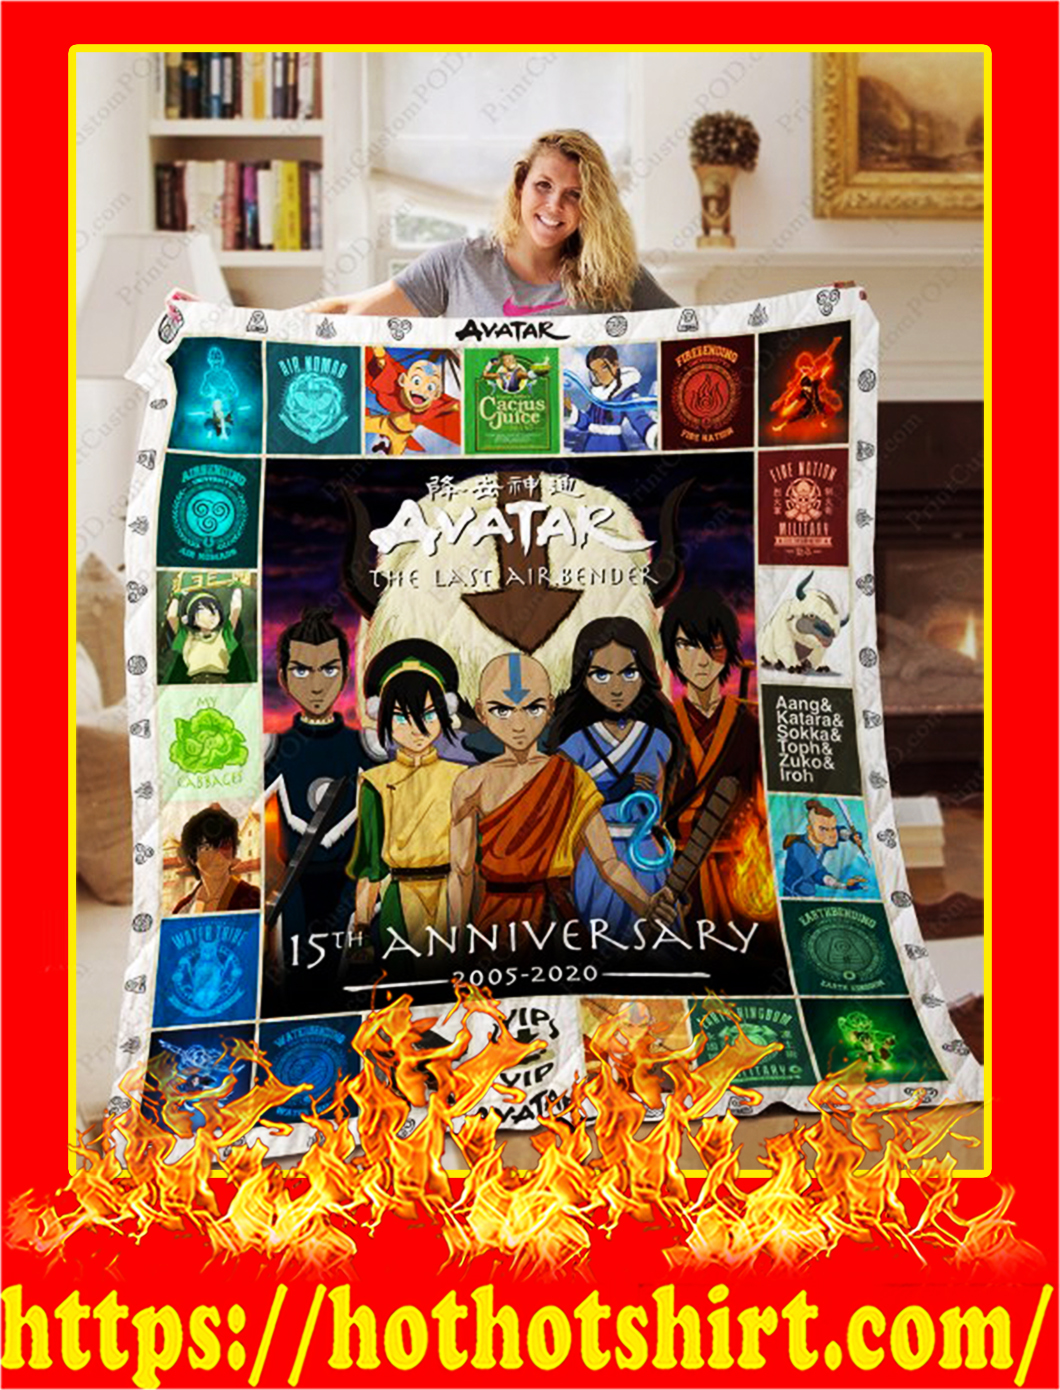 Avatar The Last Airbender Quilt Blanket - king